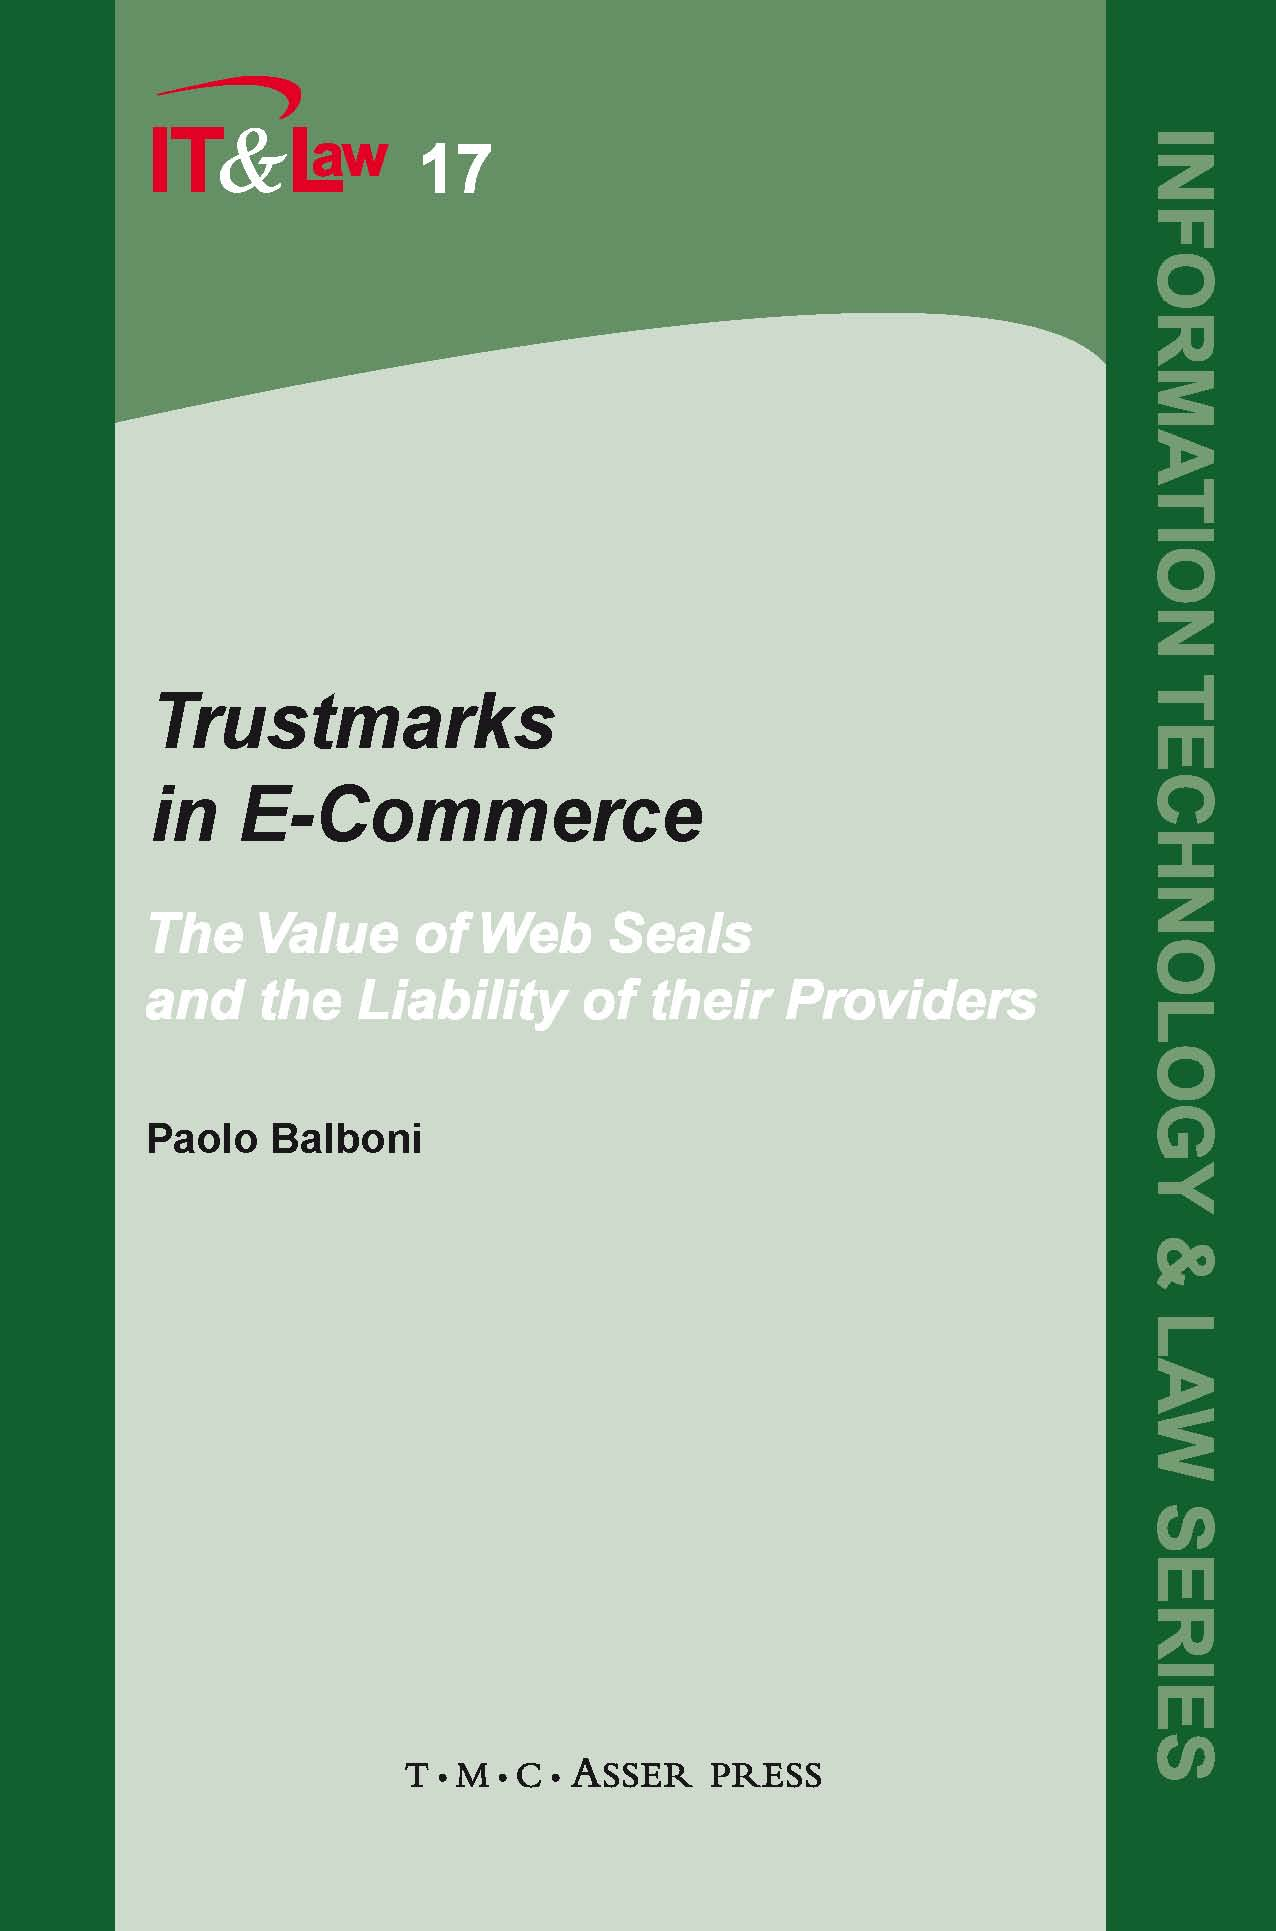 Trustmarks in E-Commerce - The Value of Web Seals and the Liability of their Providers